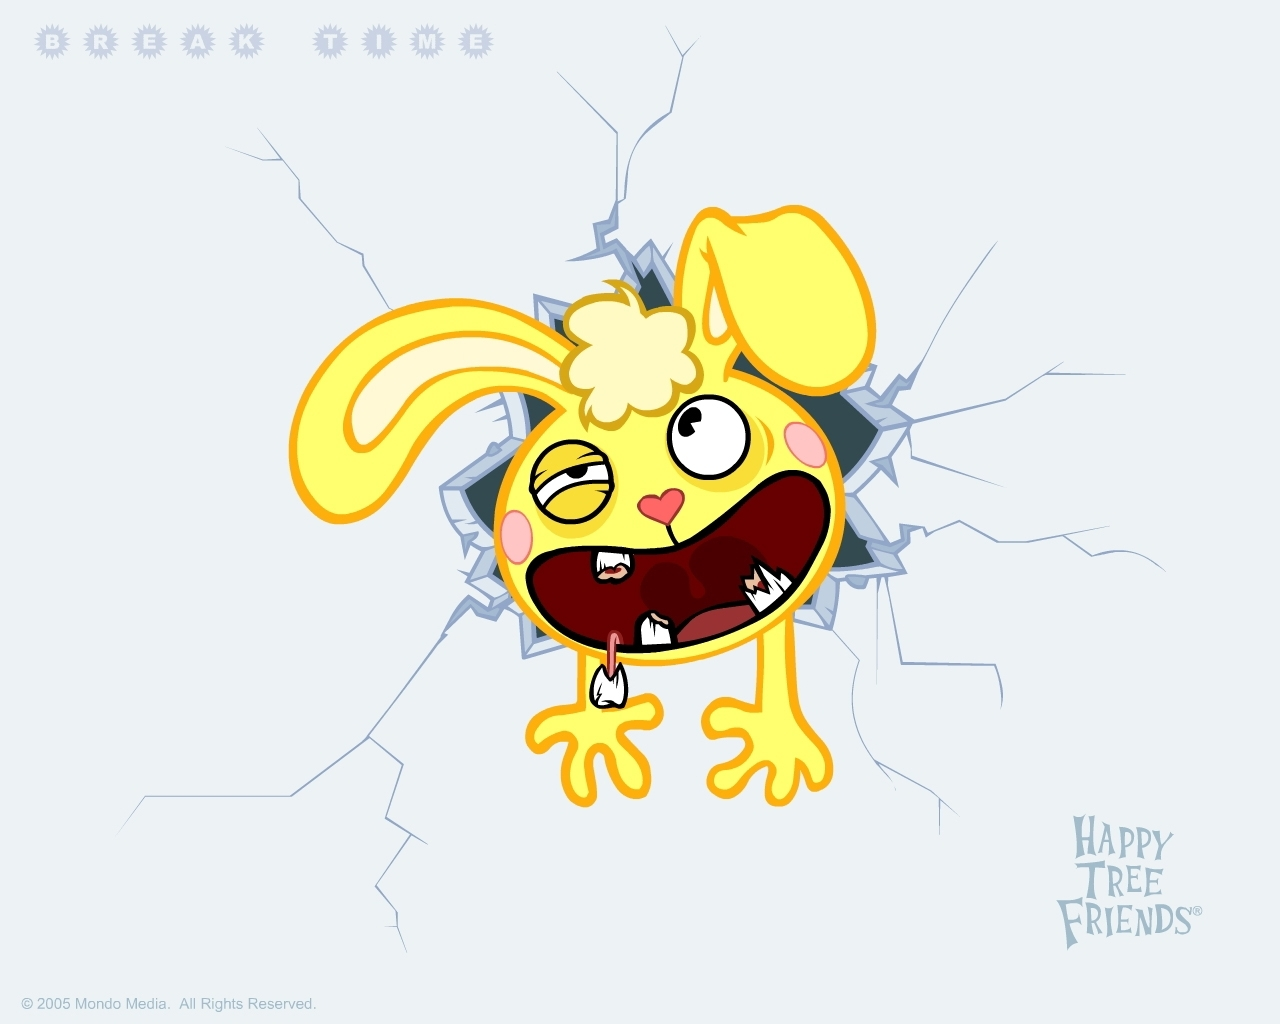 happy tree friends wallpaper and background image   1280x1024   id